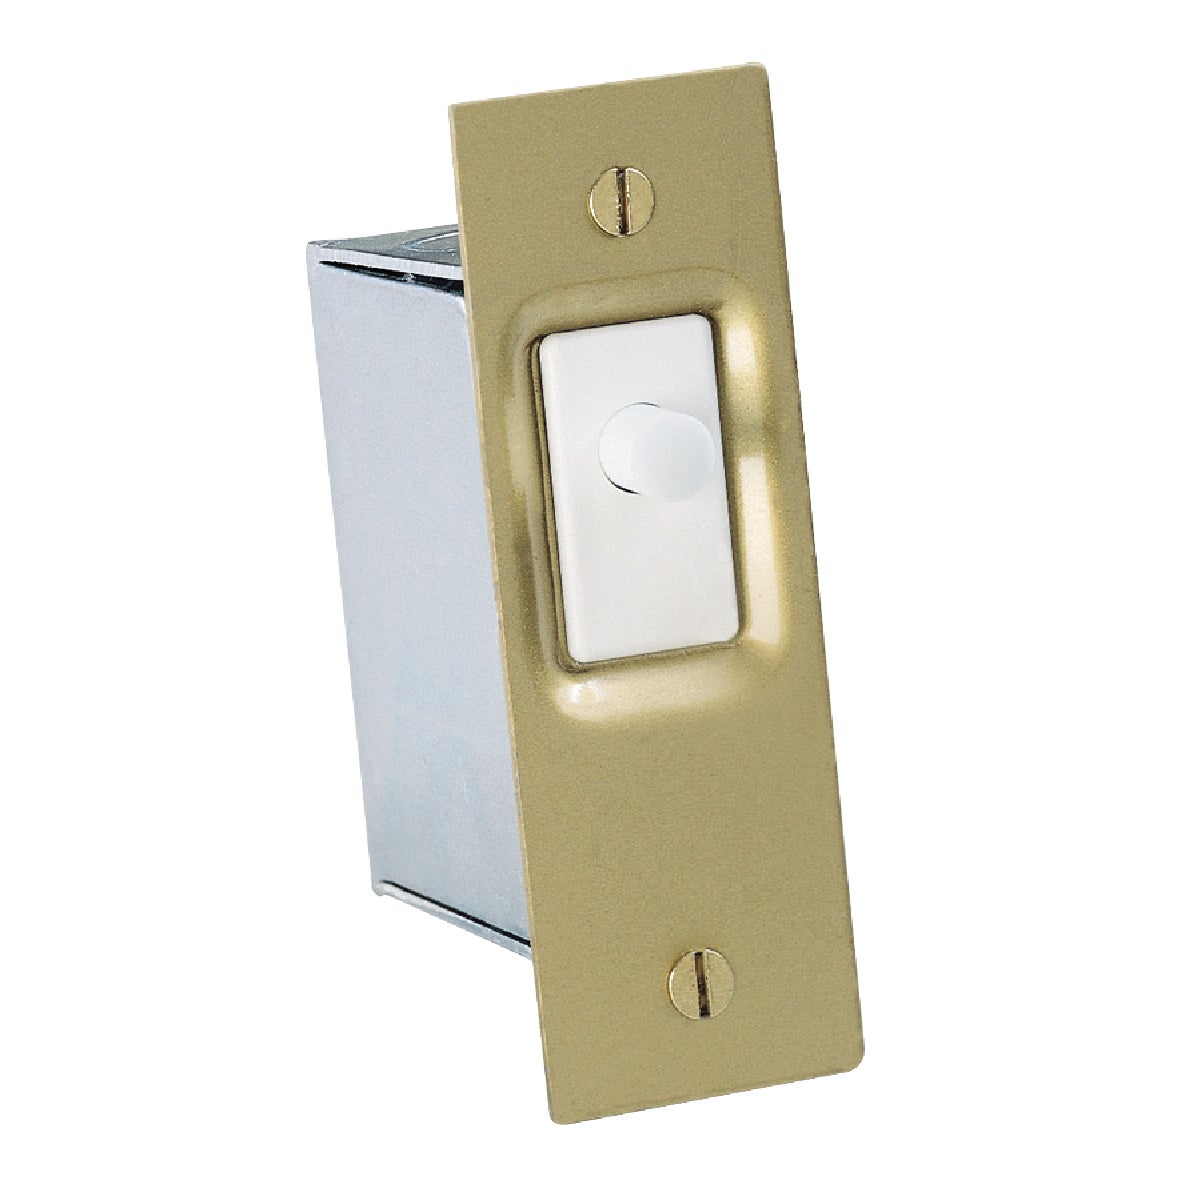 DOOR JAMB SWITCH